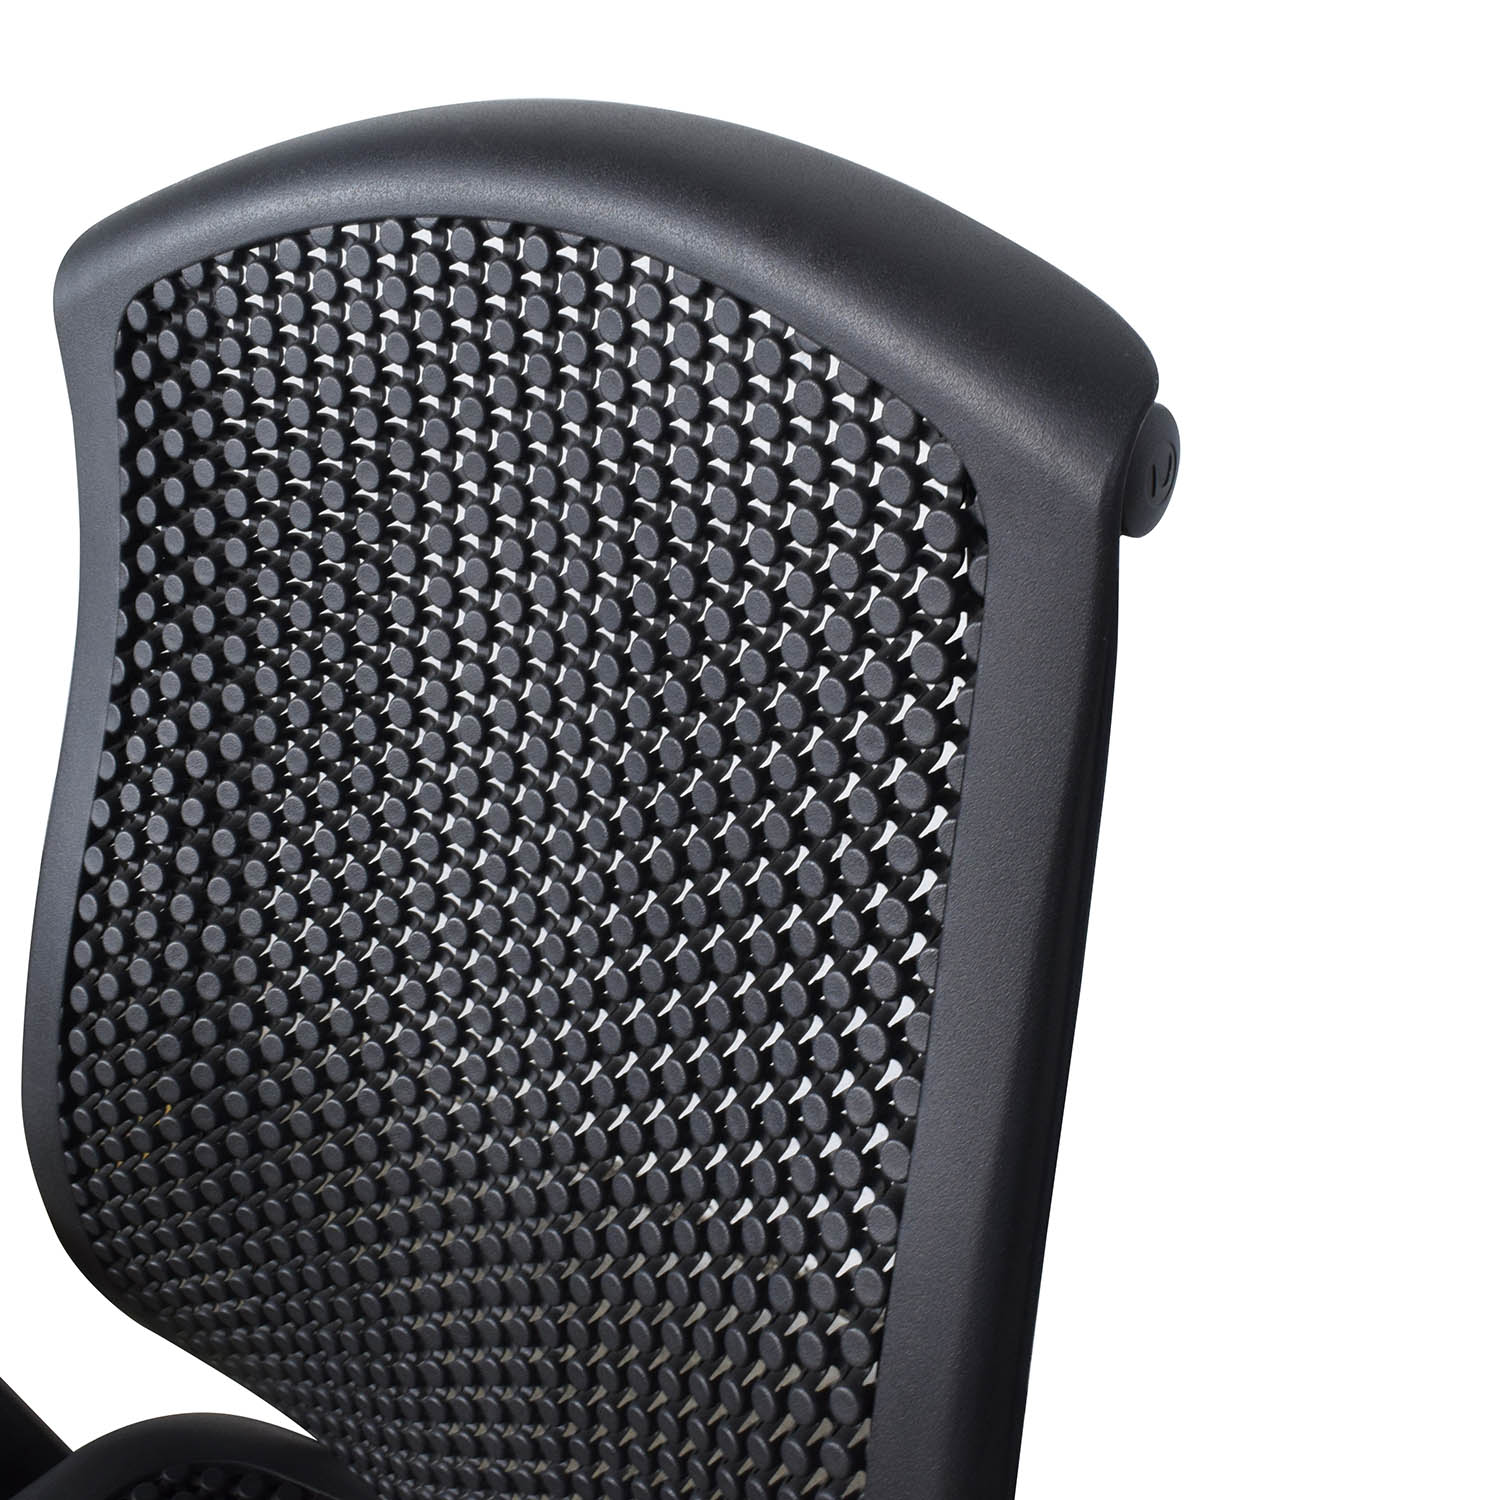 herman miller celle chair desk ball seat 63 off office